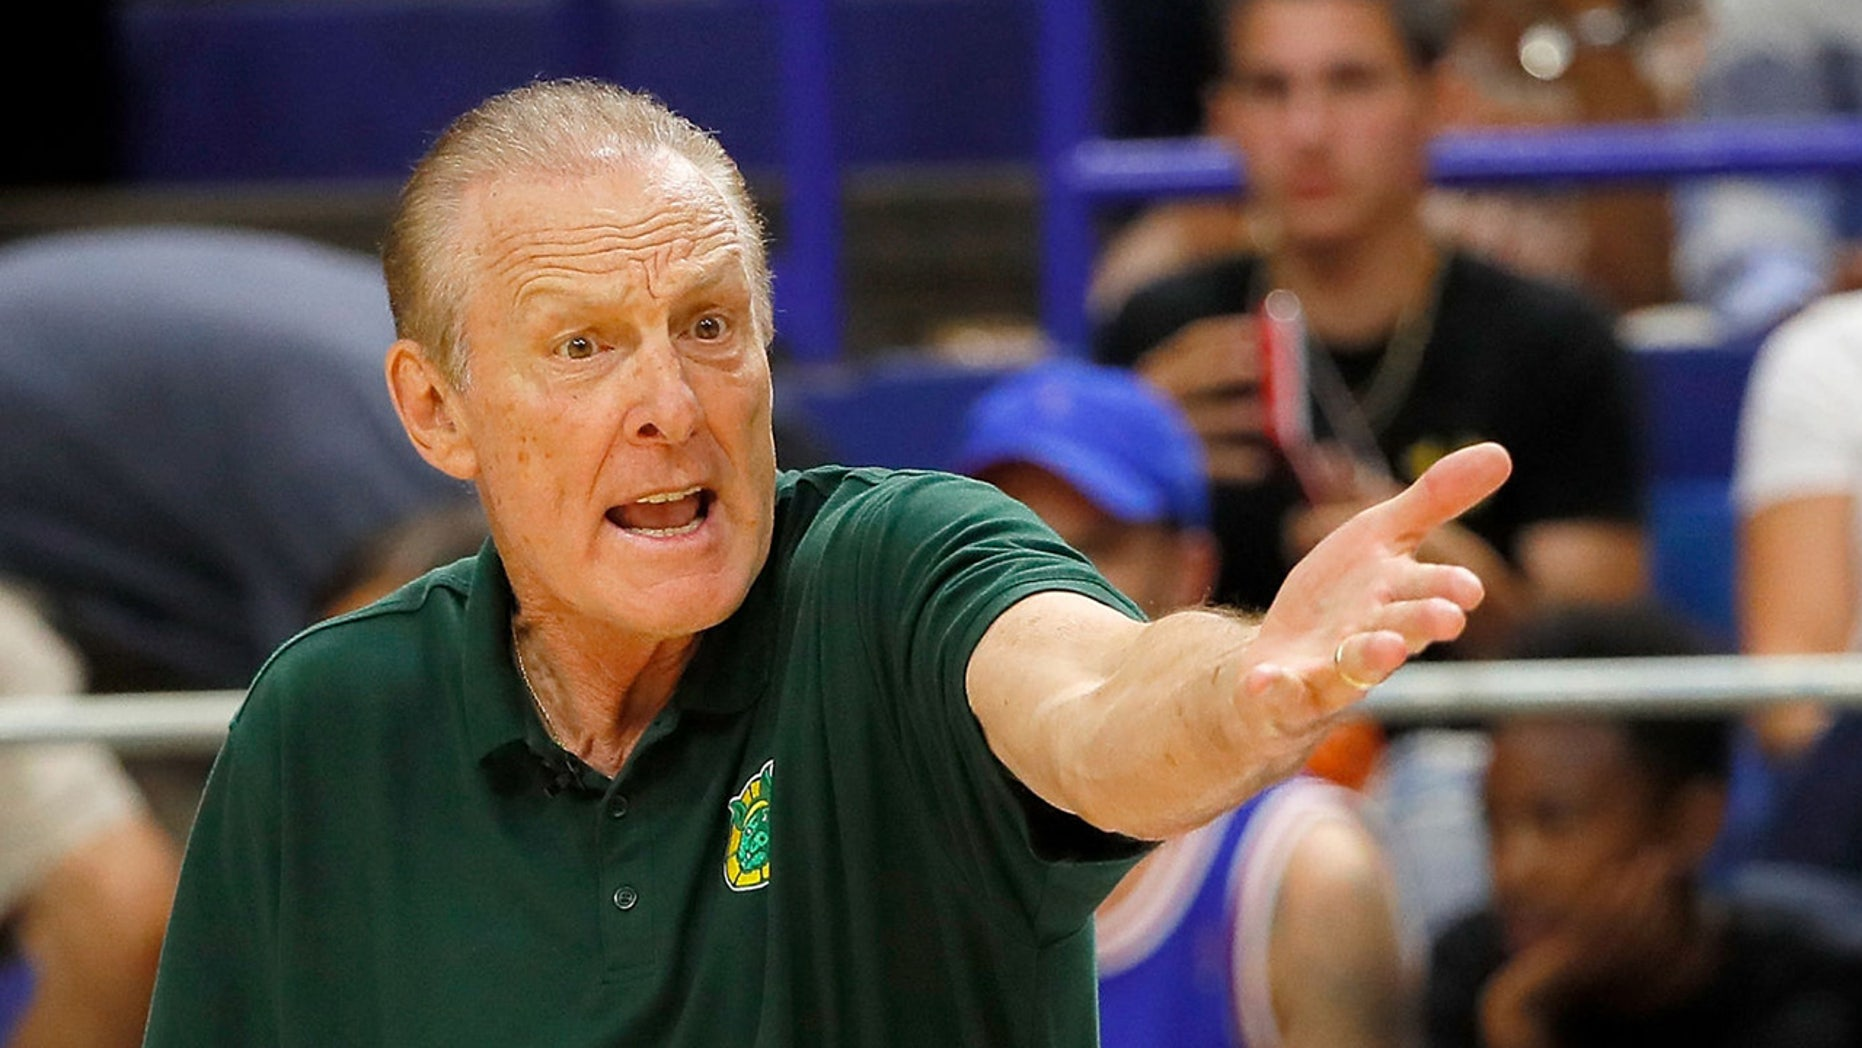 Rick Barry told Mark Levin he wants the U.S. to spend more money helping veterans. (Photo by Kevin C. Cox/BIG3/Getty Images)